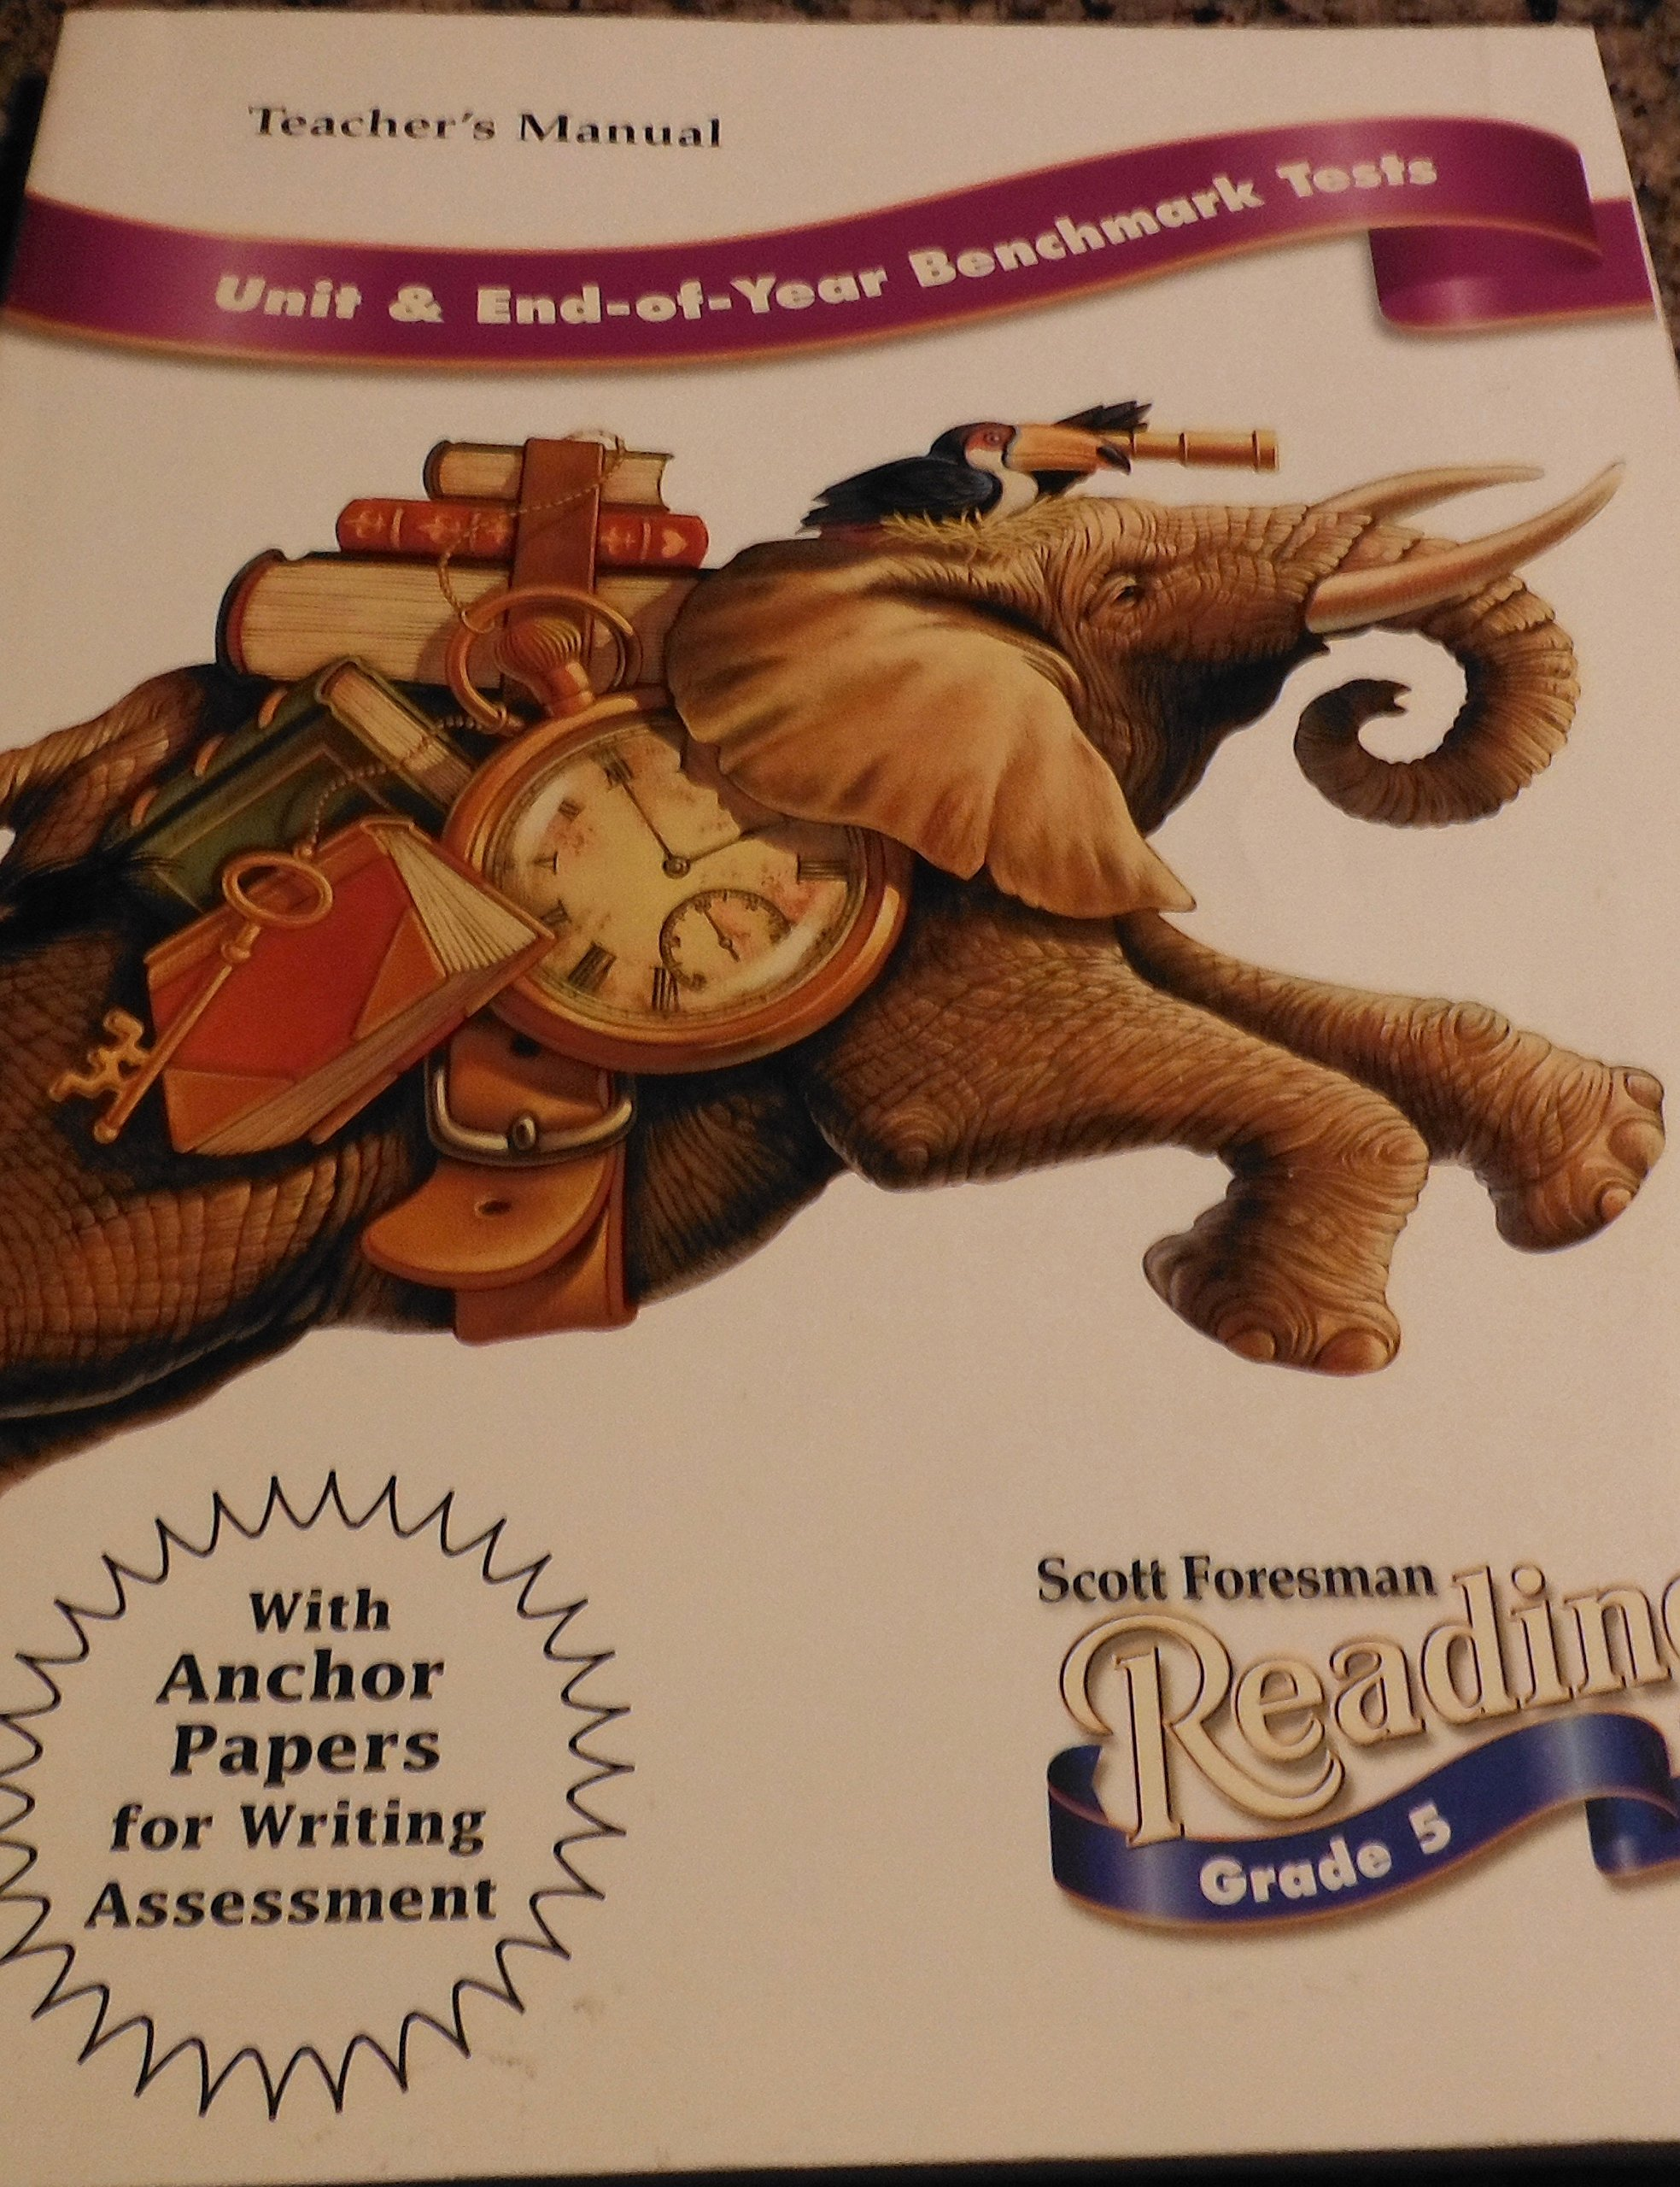 Download Scott Foresman Reading - Unit and End-fo-Year Benchmark Tests - Teacher's Manual - Grade 5 pdf epub